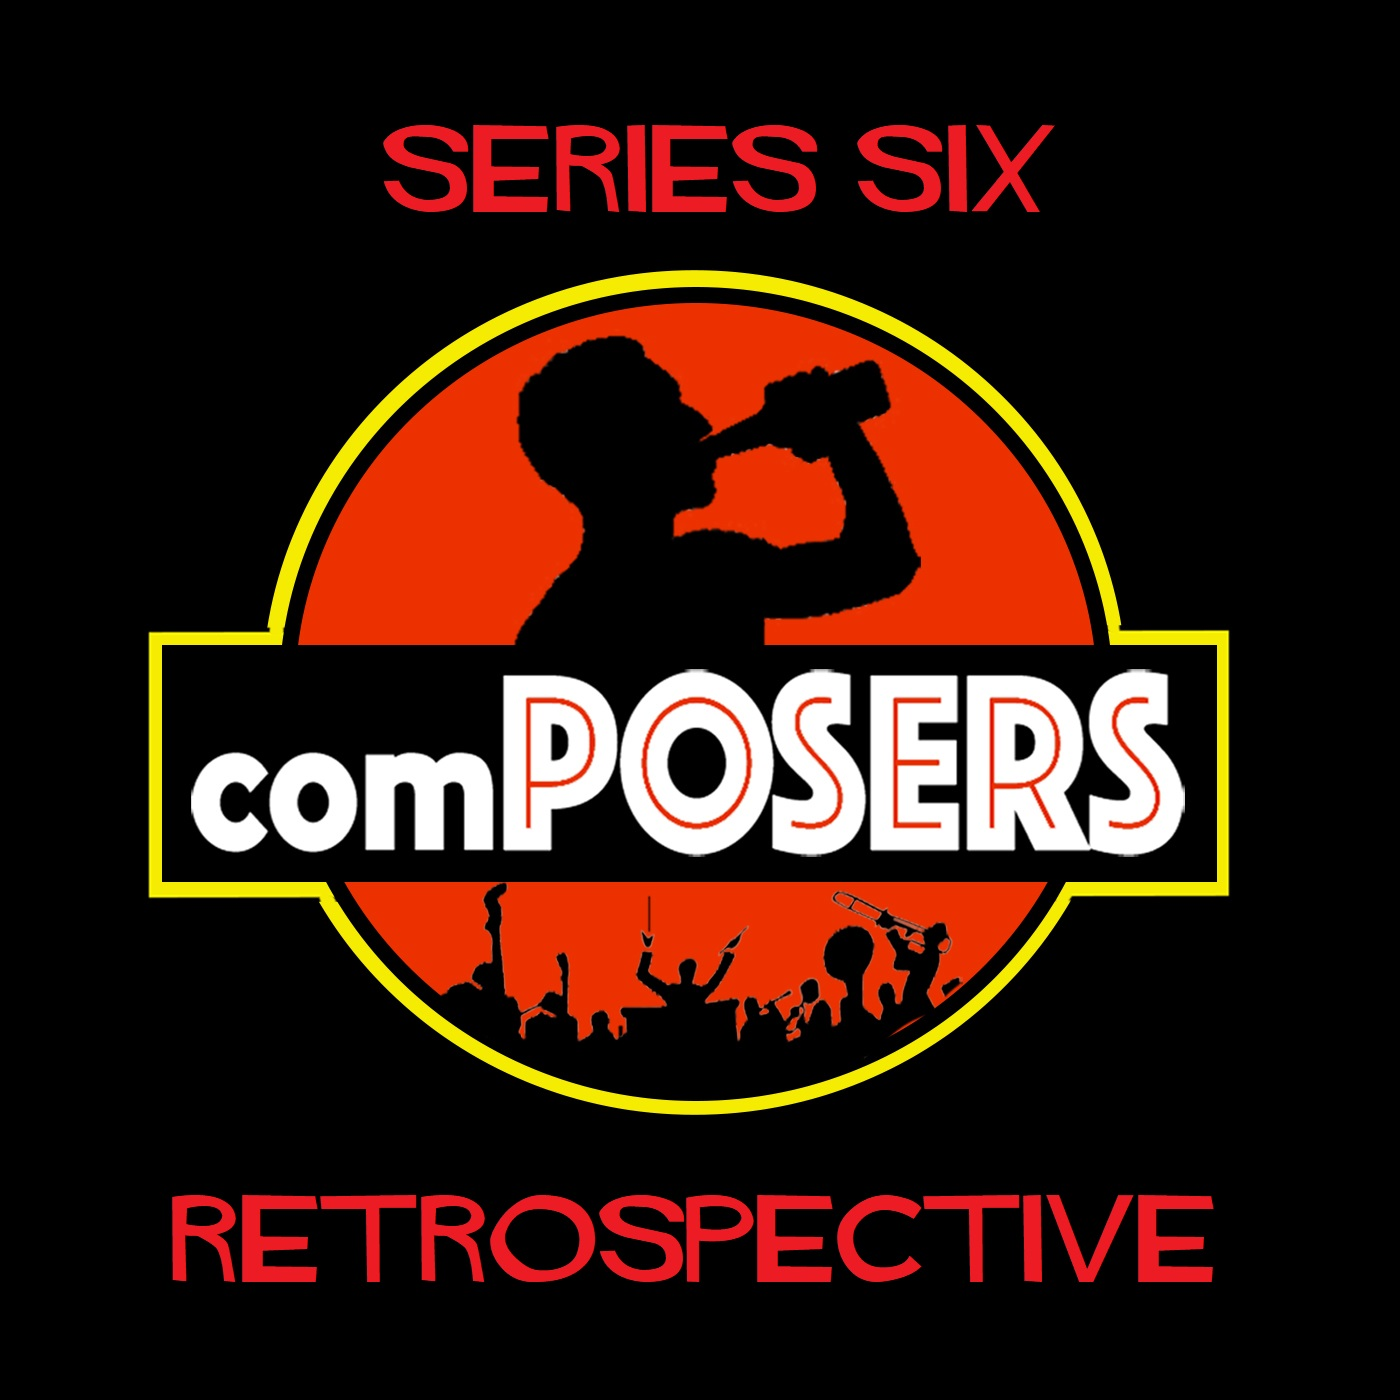 comPOSERS Series 6 Retrospective